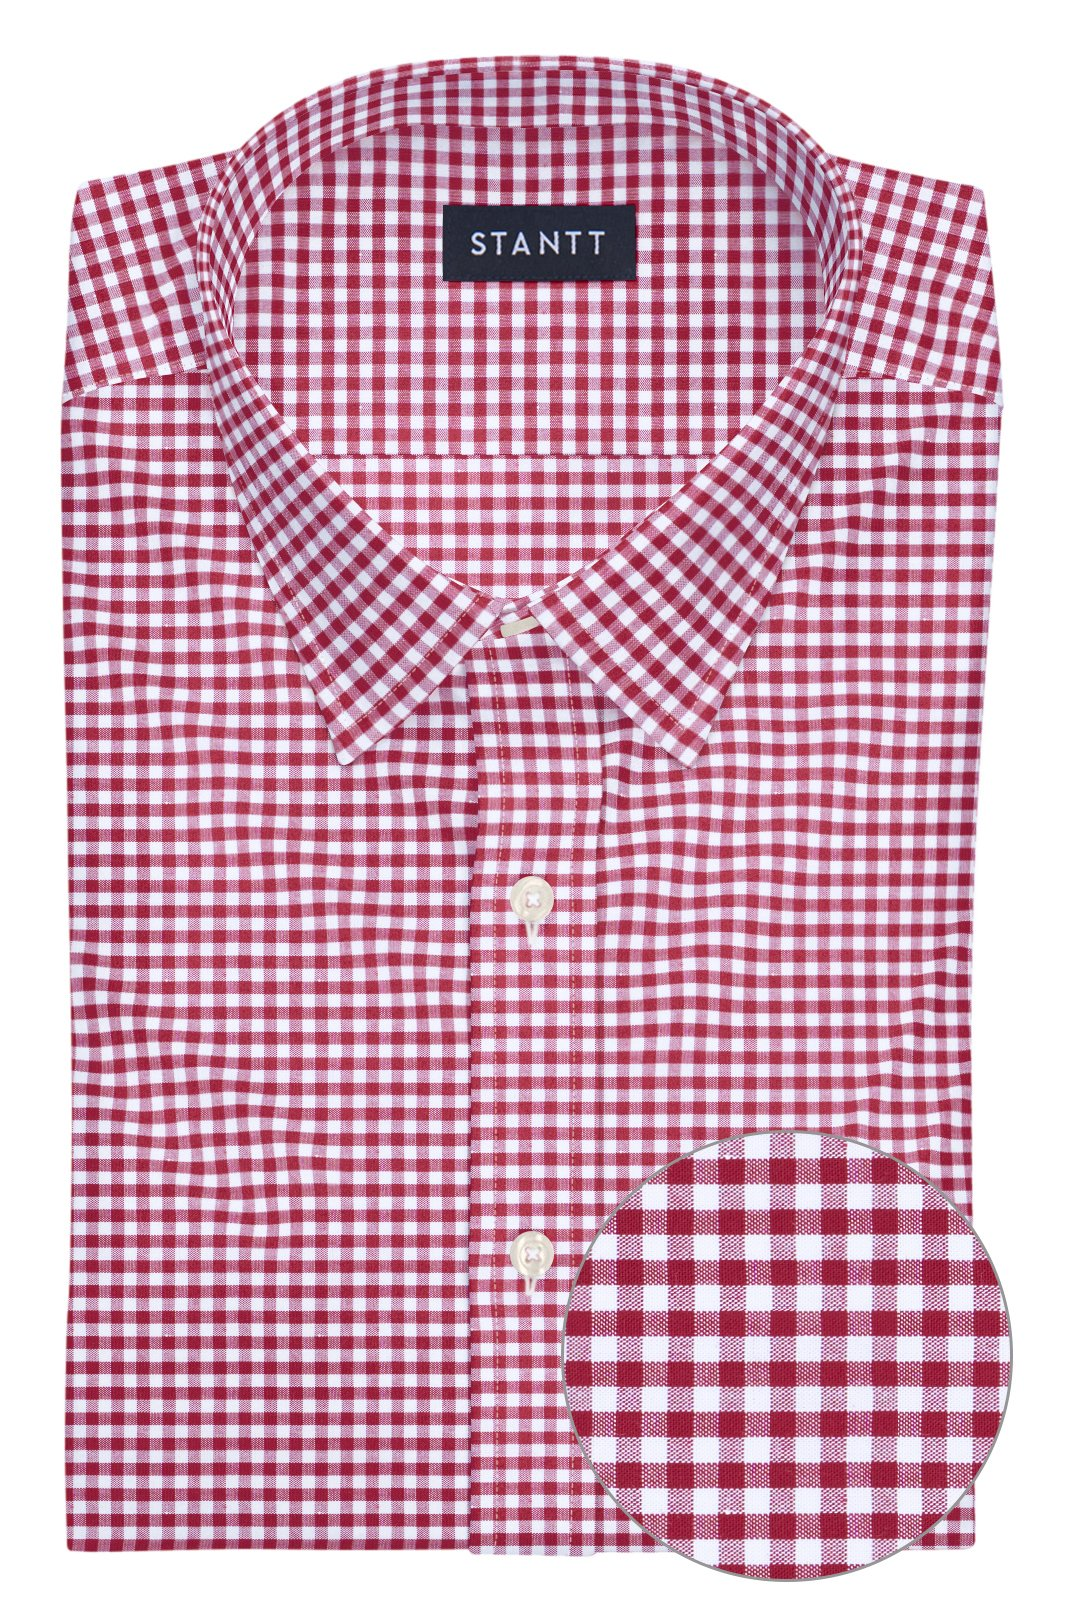 Brick Red Mini Gingham: Semi-Spread Collar, French Cuff